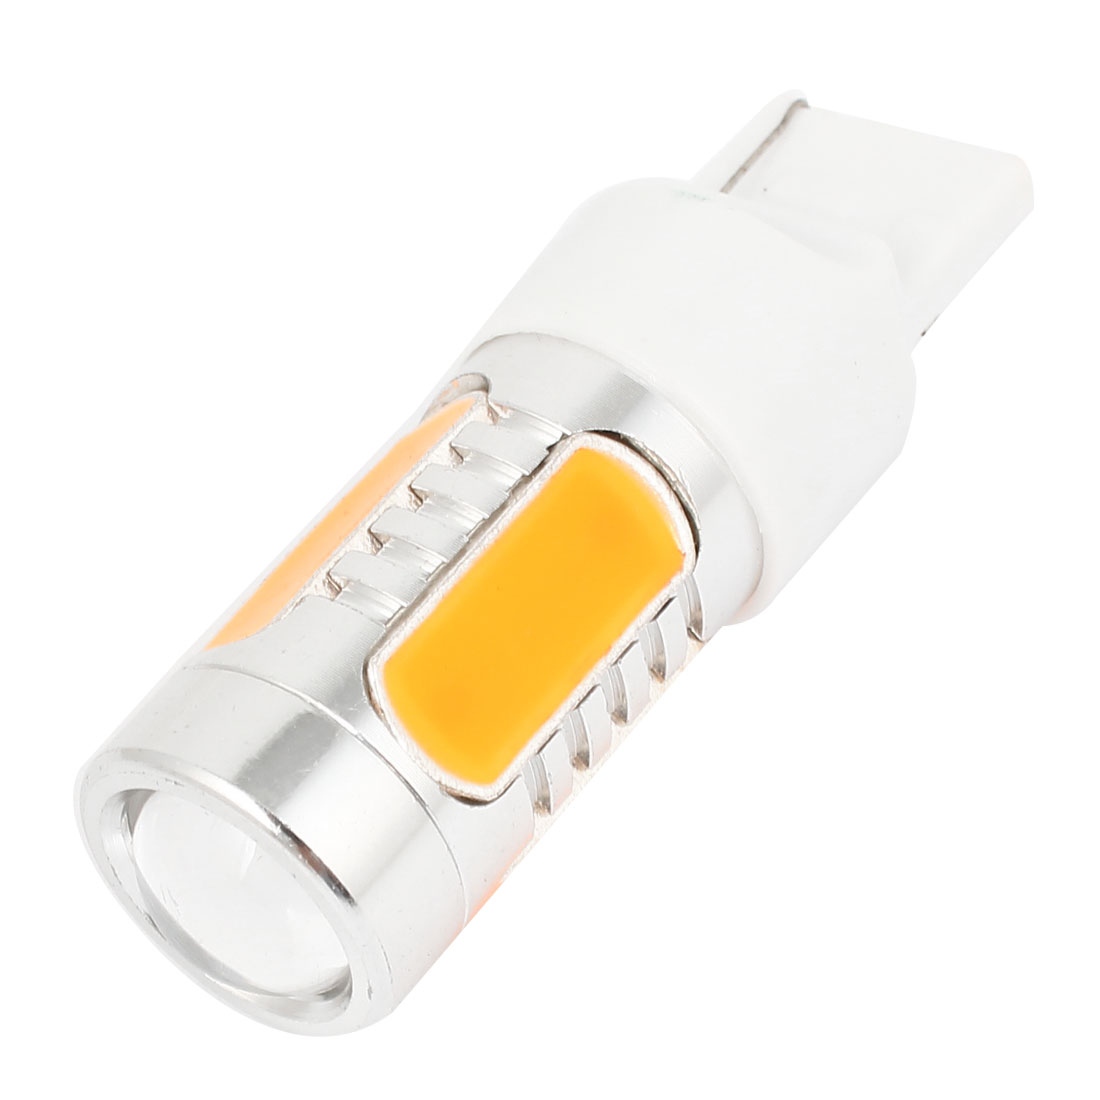 Van Truck T20 7440 Yellow 5 LED Backup Light Brake Lamp Bulb 11W DC 12V